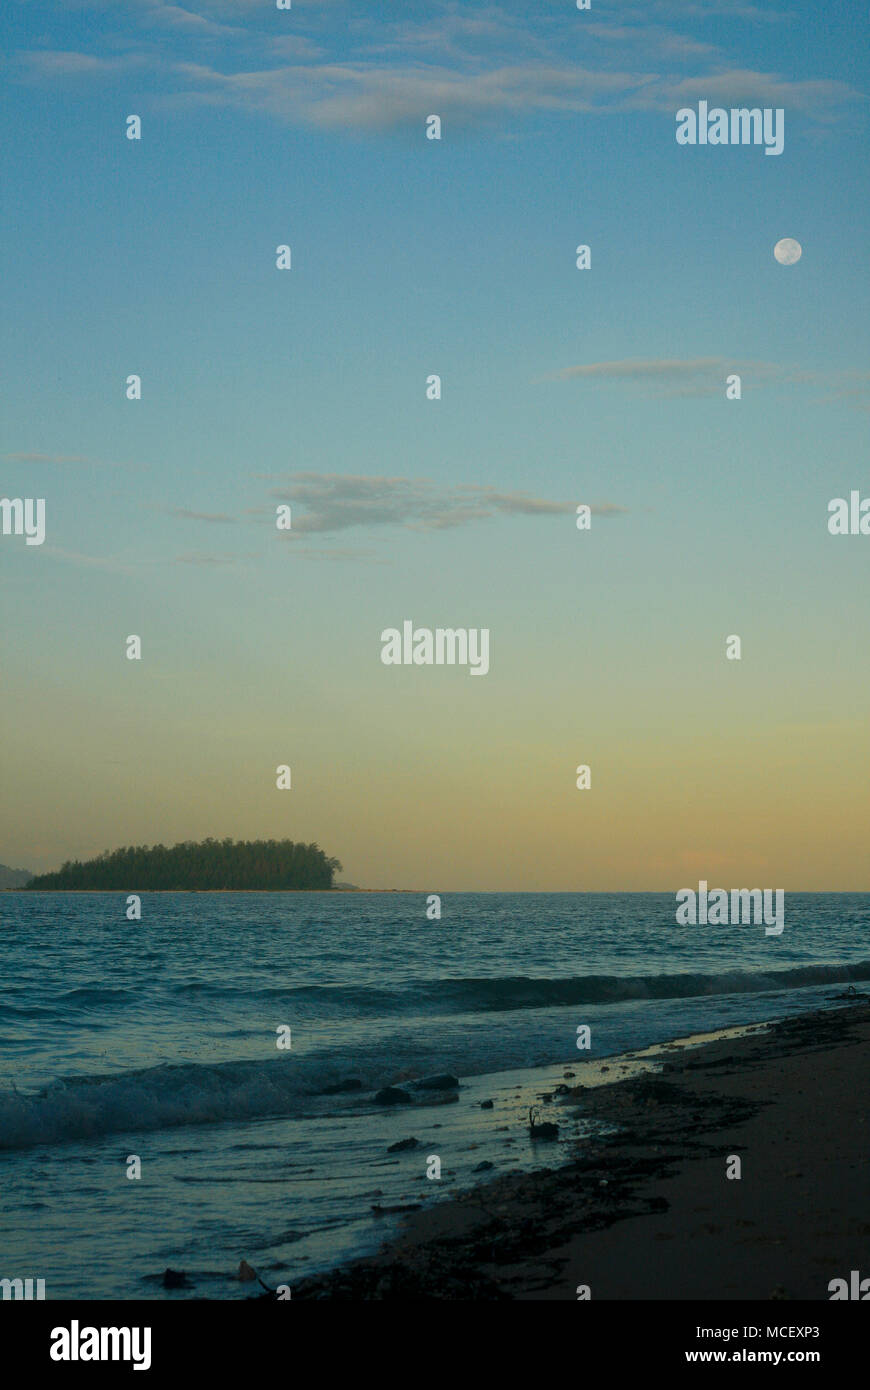 Inhabited island. Gorontalo. Sulawesi. Indonesia - Stock Image